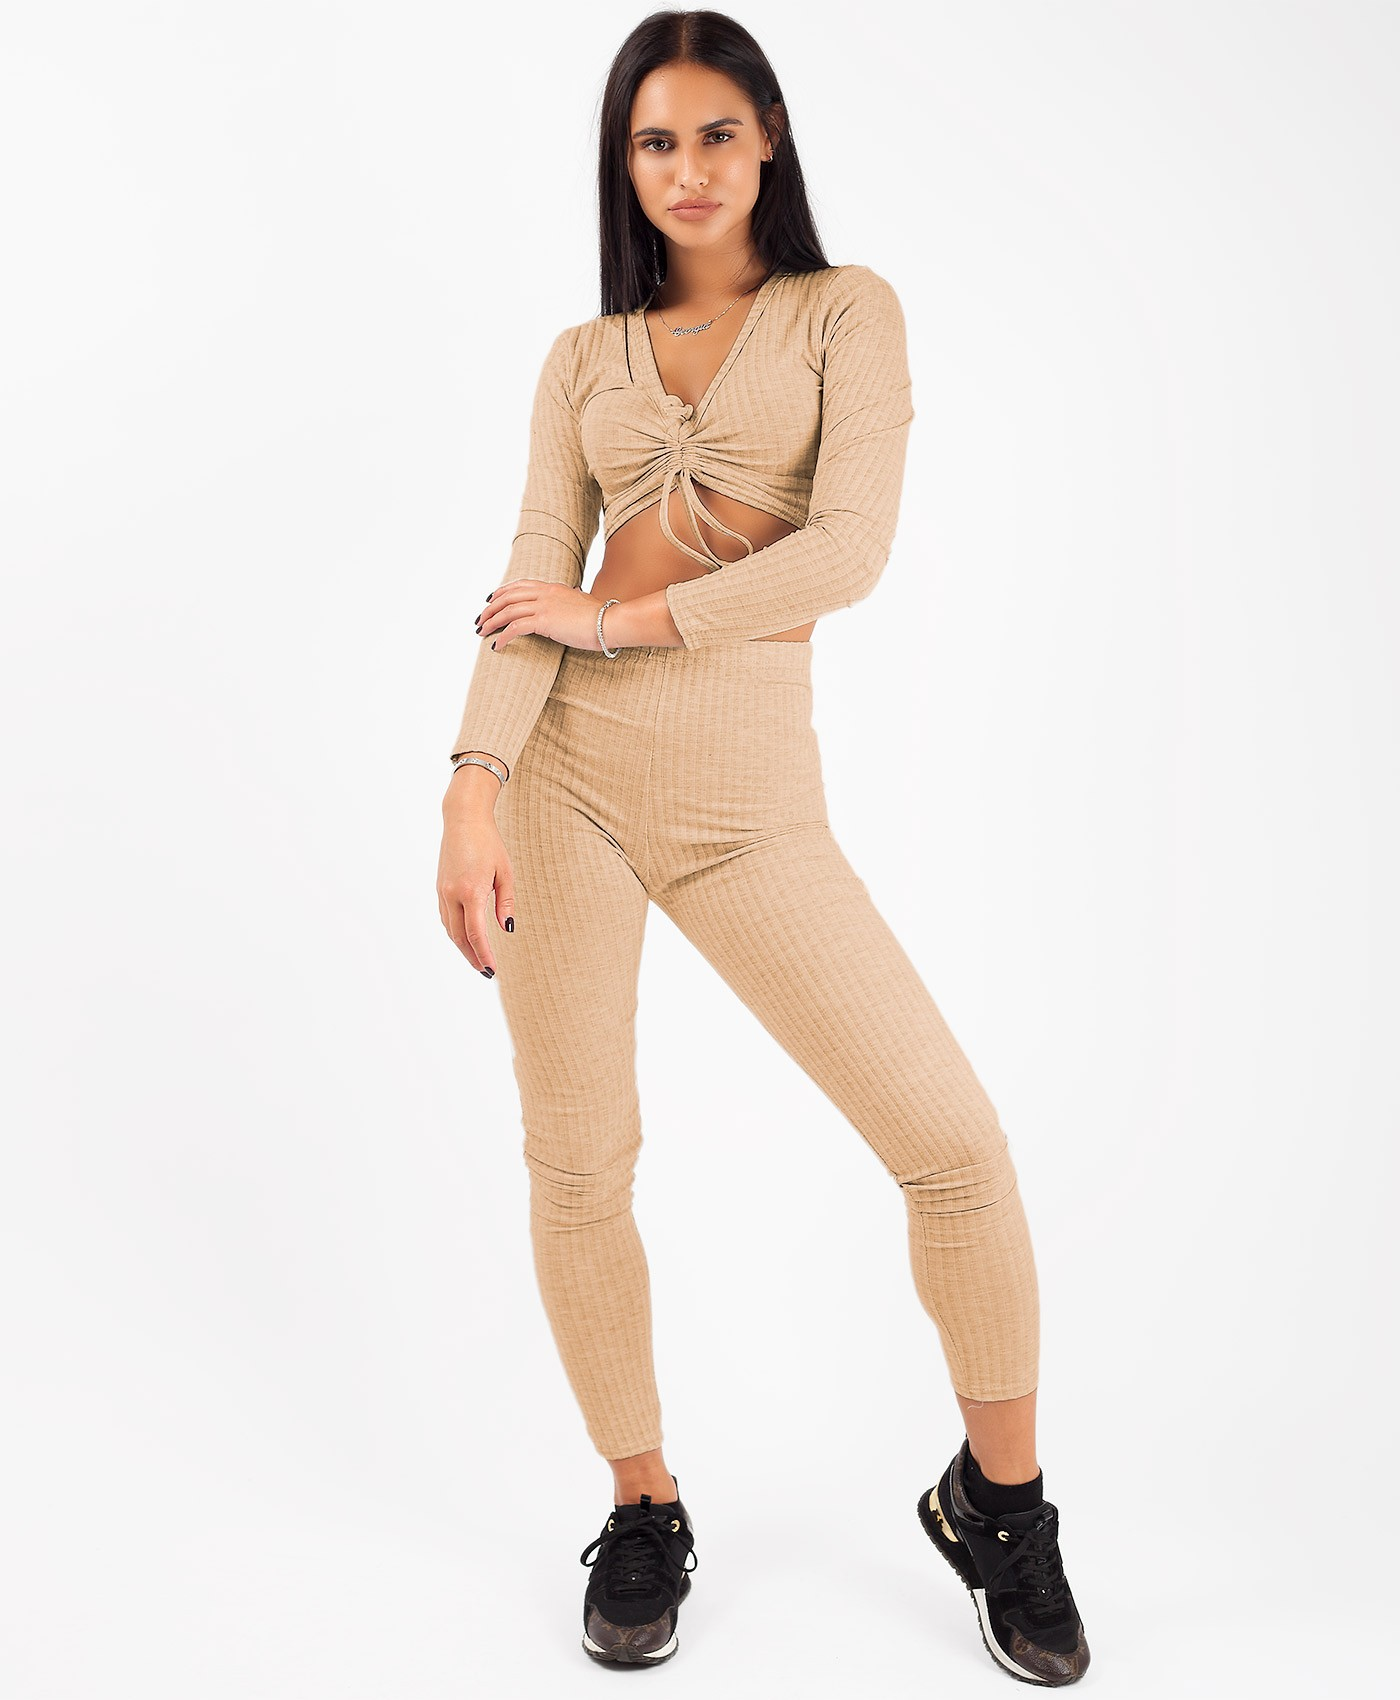 Camel-Ribbed-Tie-Front-Crop-Top-&-Trouser-Co-Ord-Loungewear-Set-2